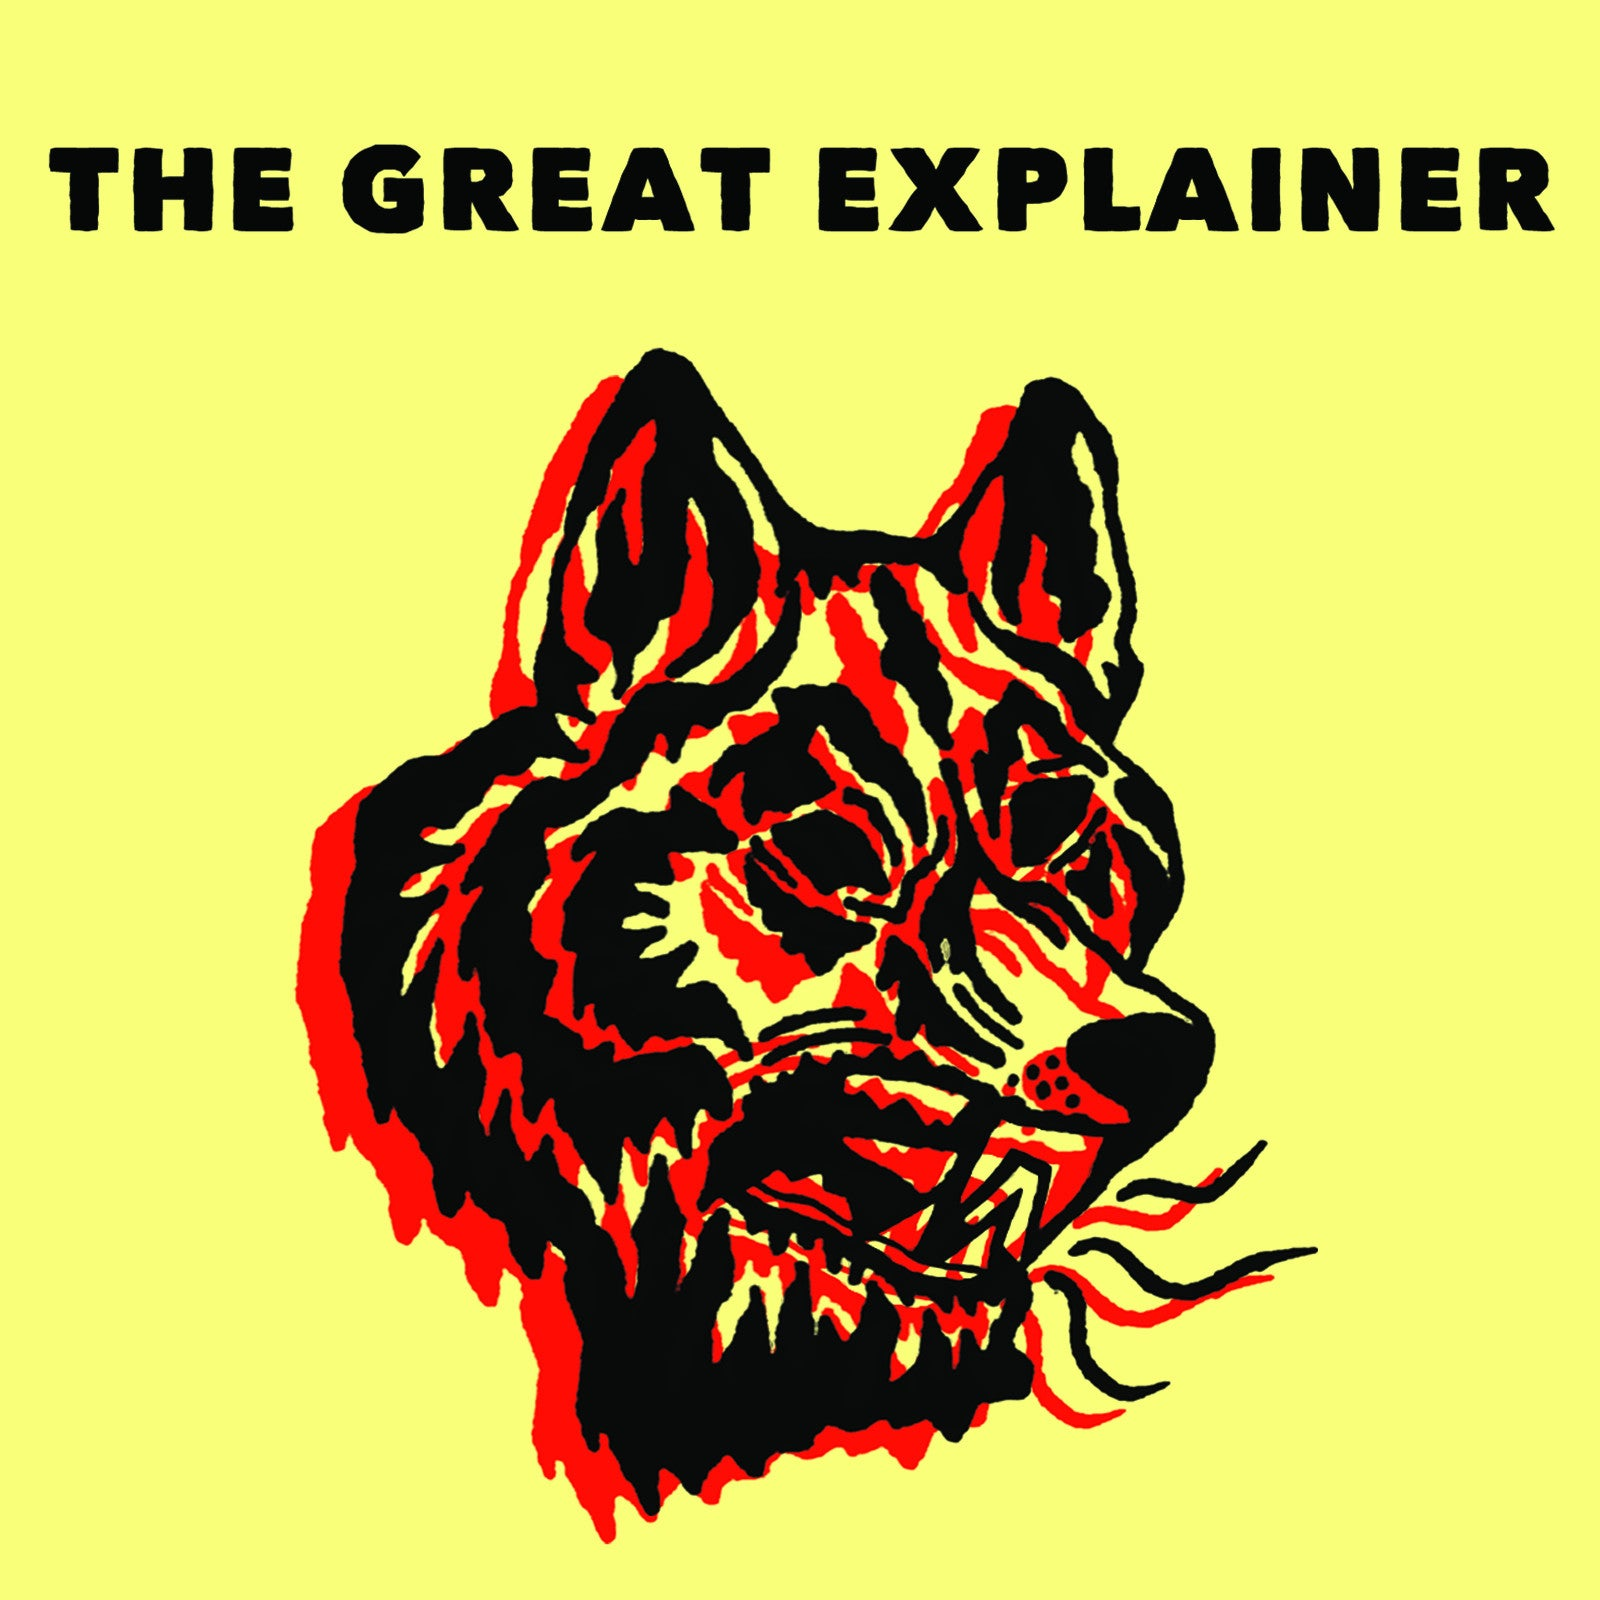 The Great Explainer